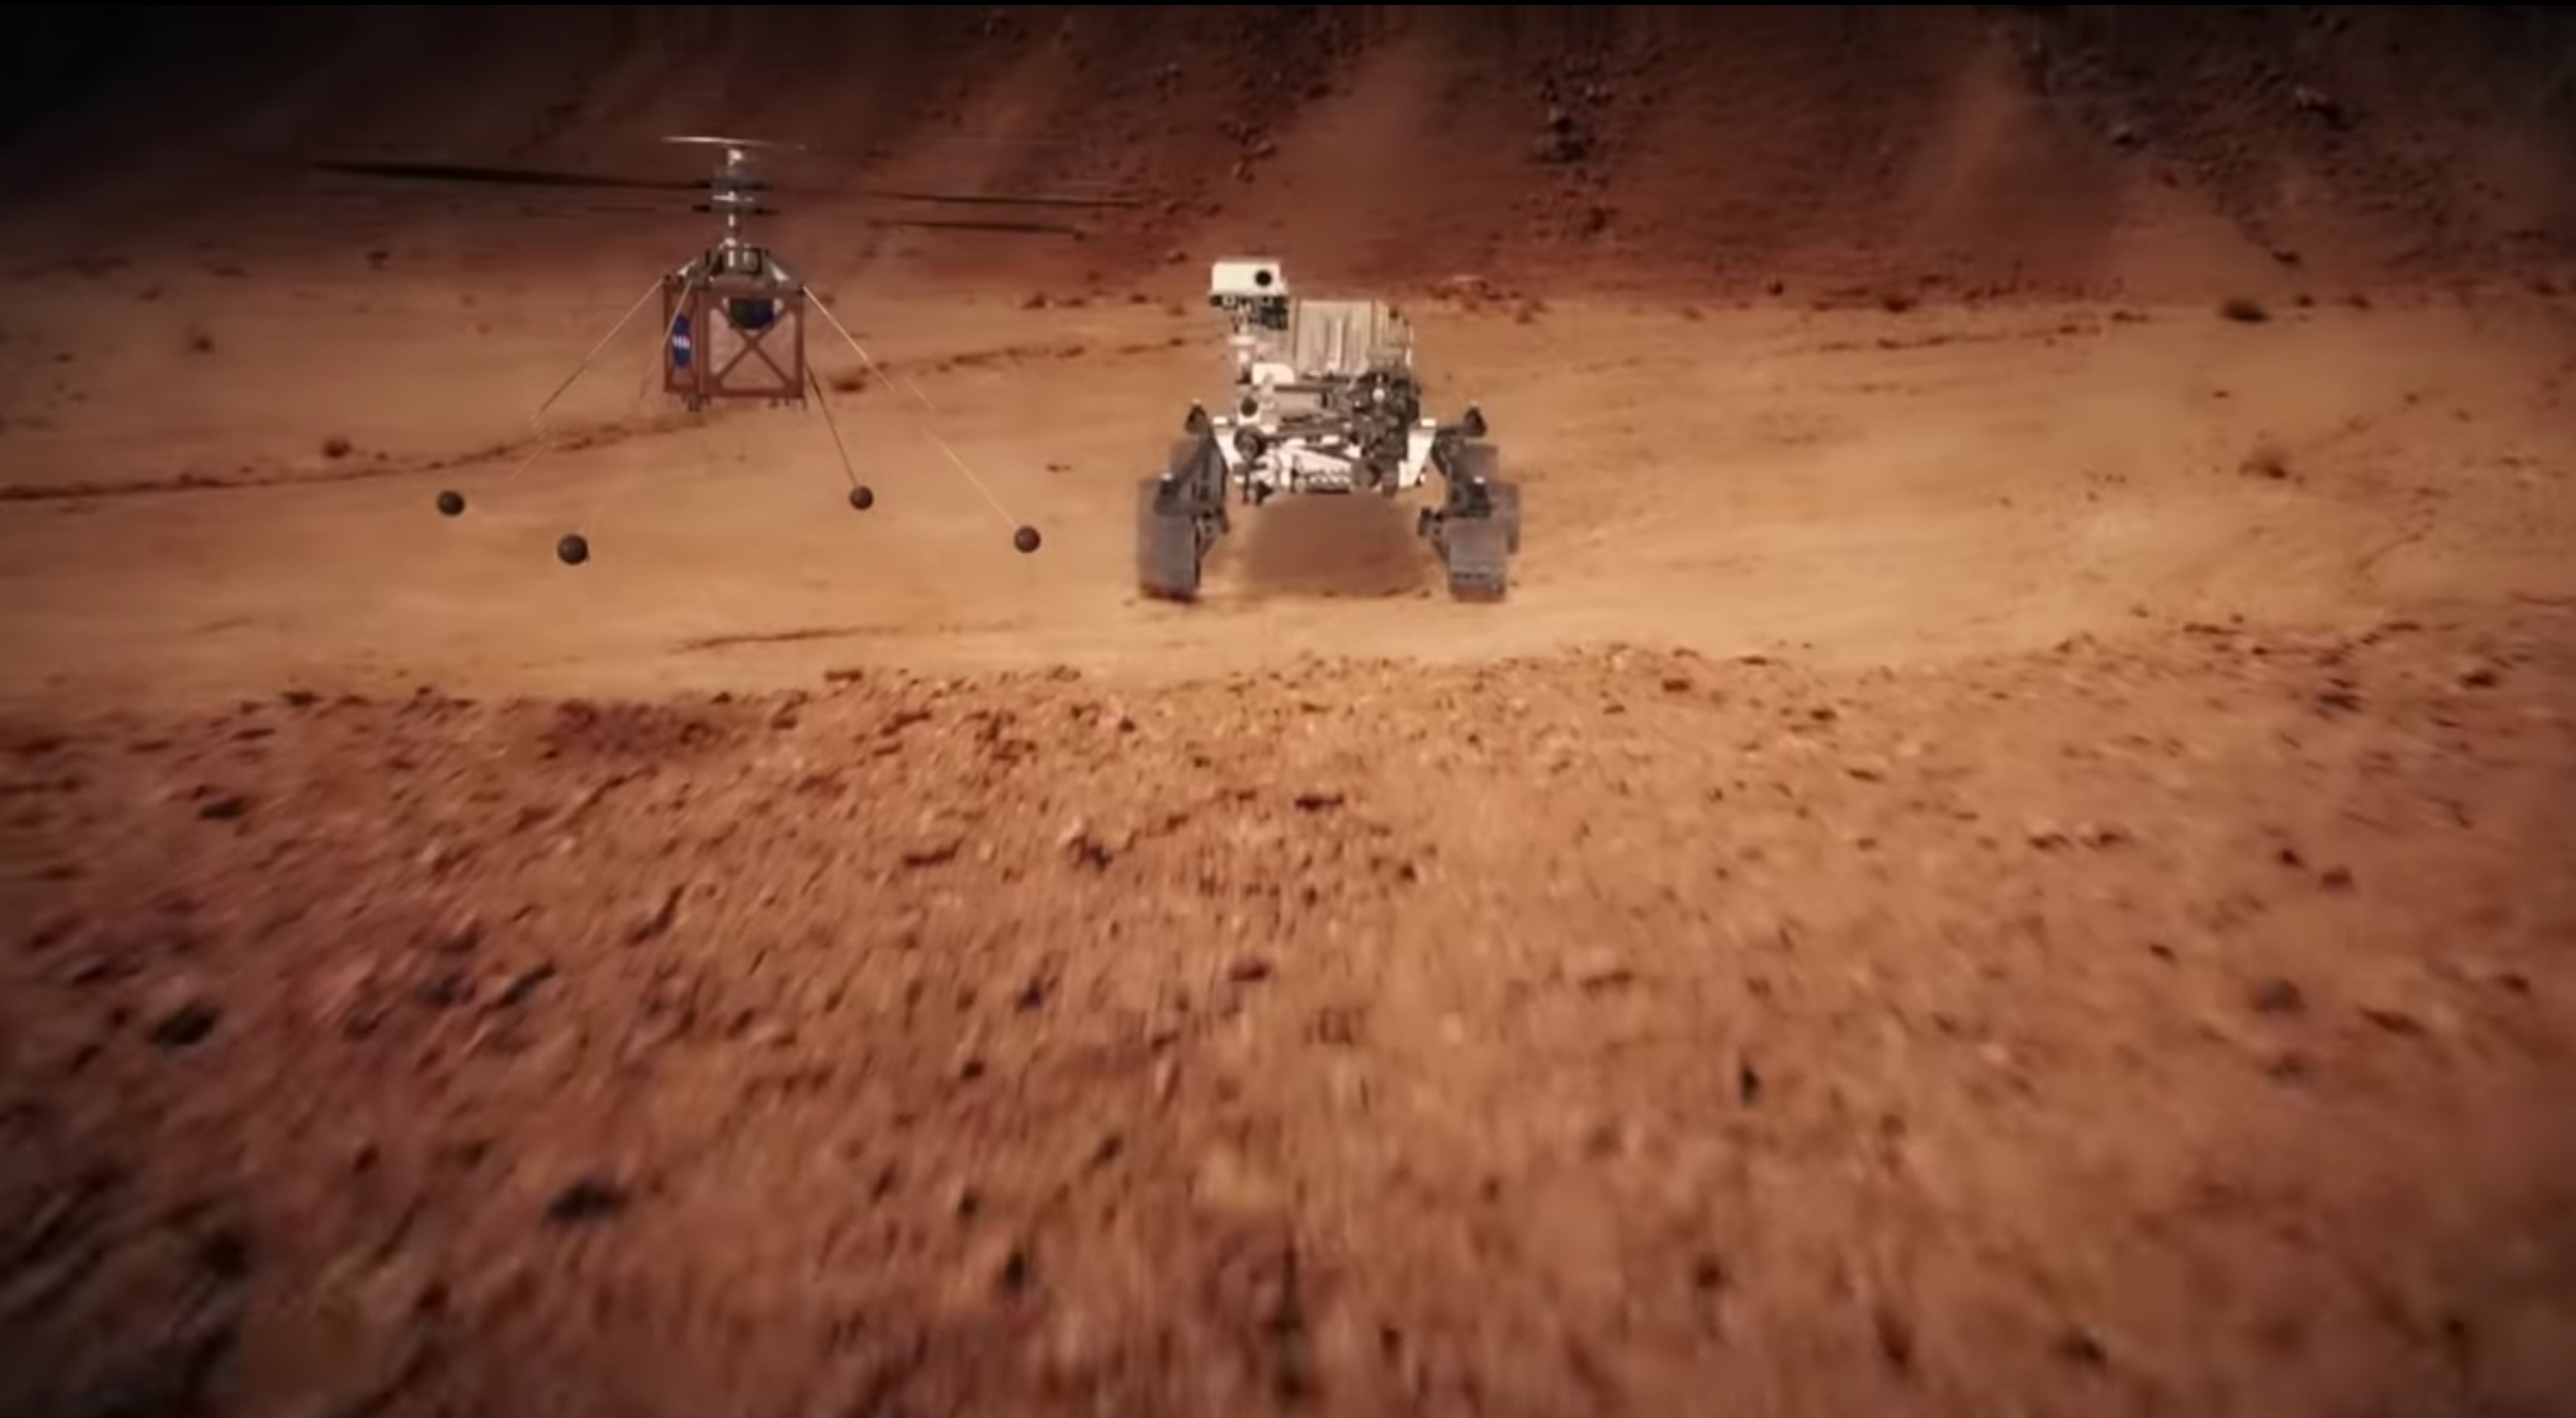 animation of helicopter flying near rover